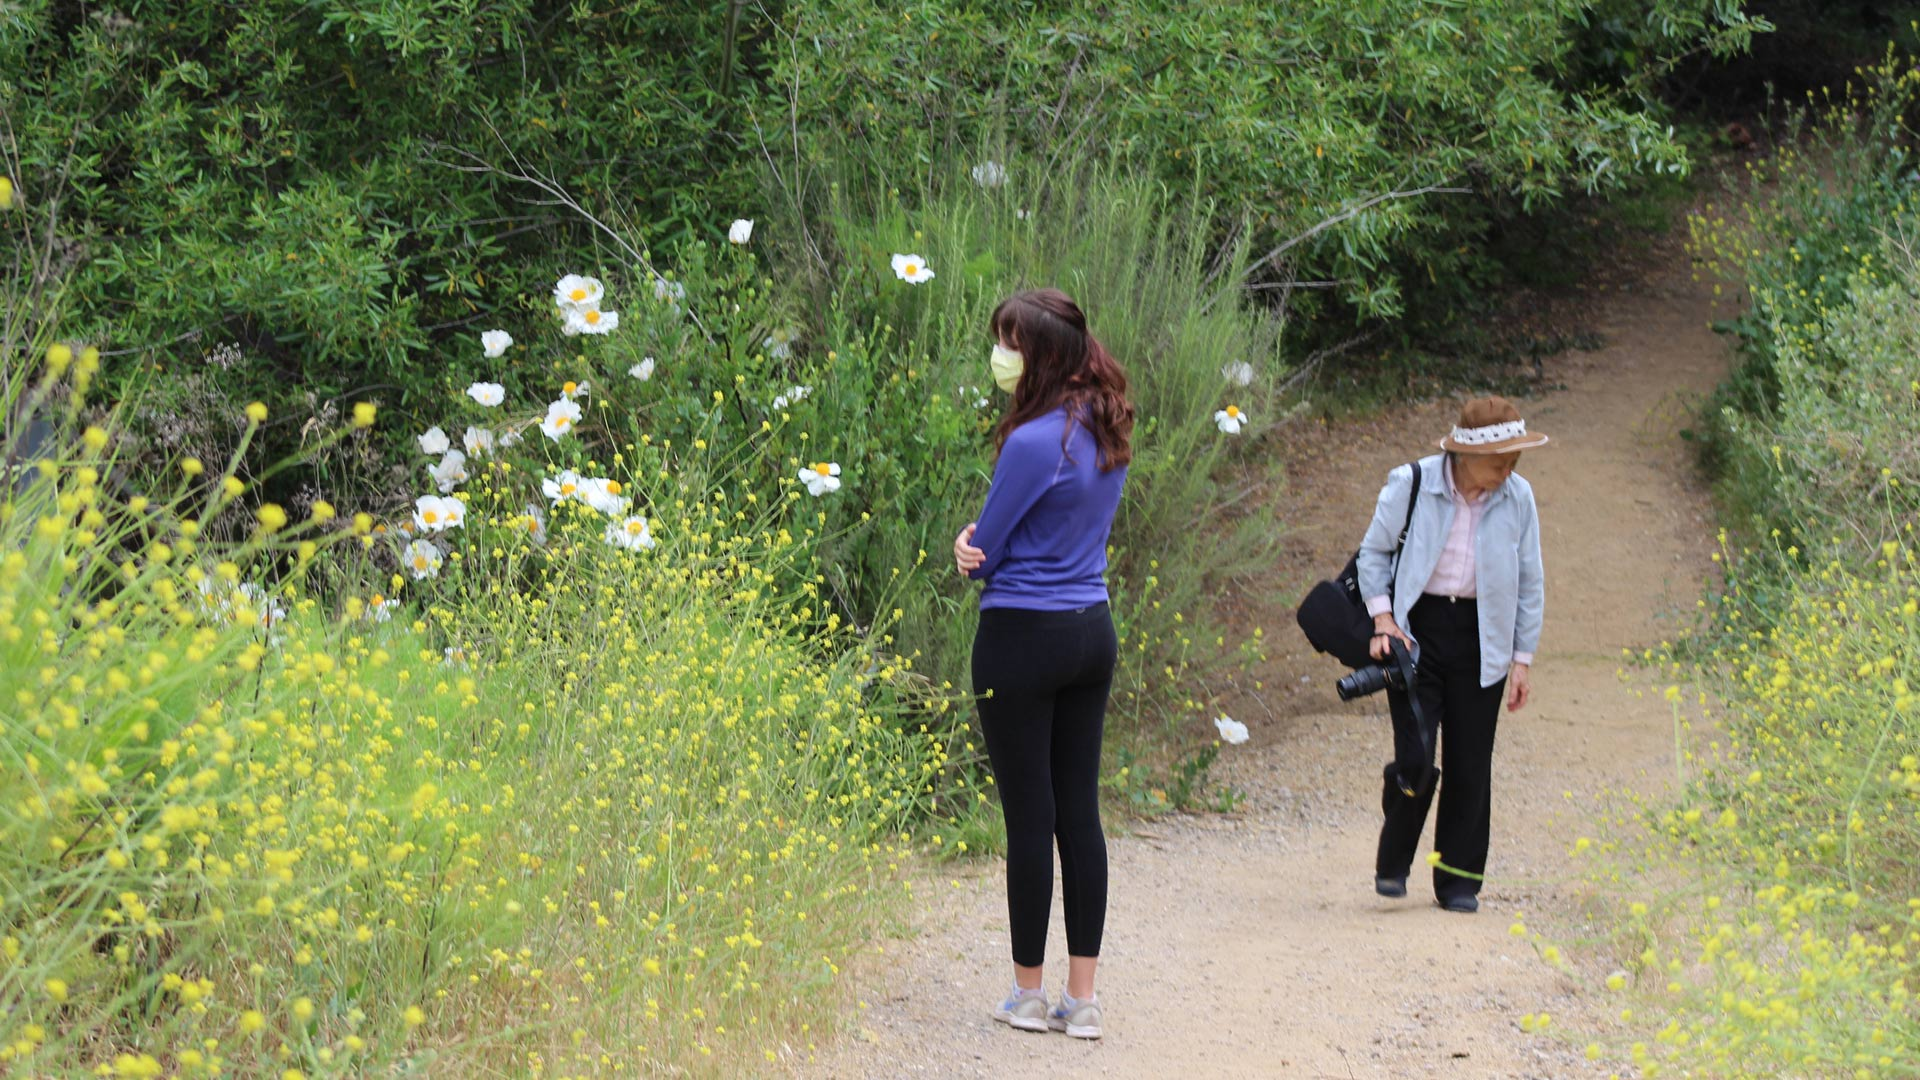 Two women walk in Temescal Canyon, May 9. 2020, the first day L.A. City and County trails are reopened. | Karen Foshay